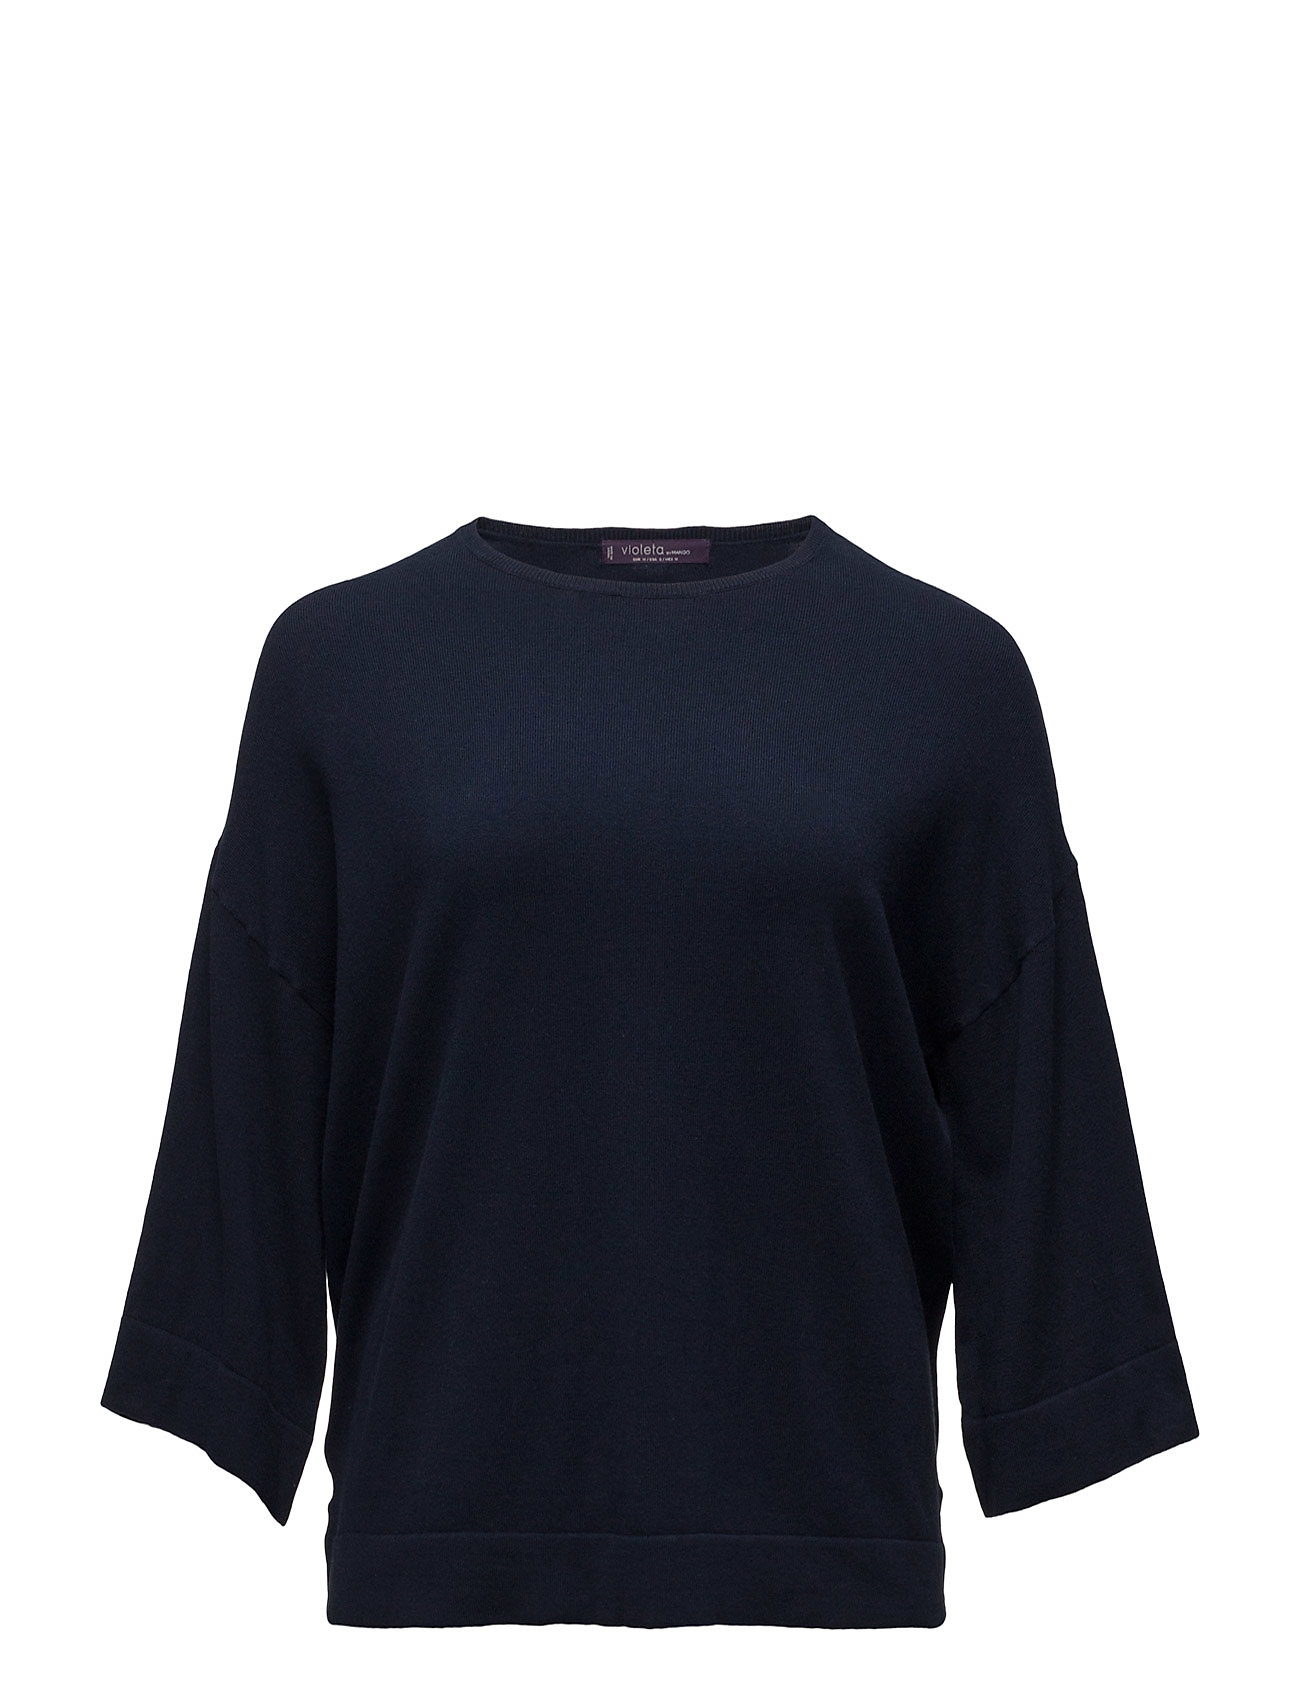 Fine-Knit Cotton Sweater Violeta by Mango Striktøj til Kvinder i Navy blå